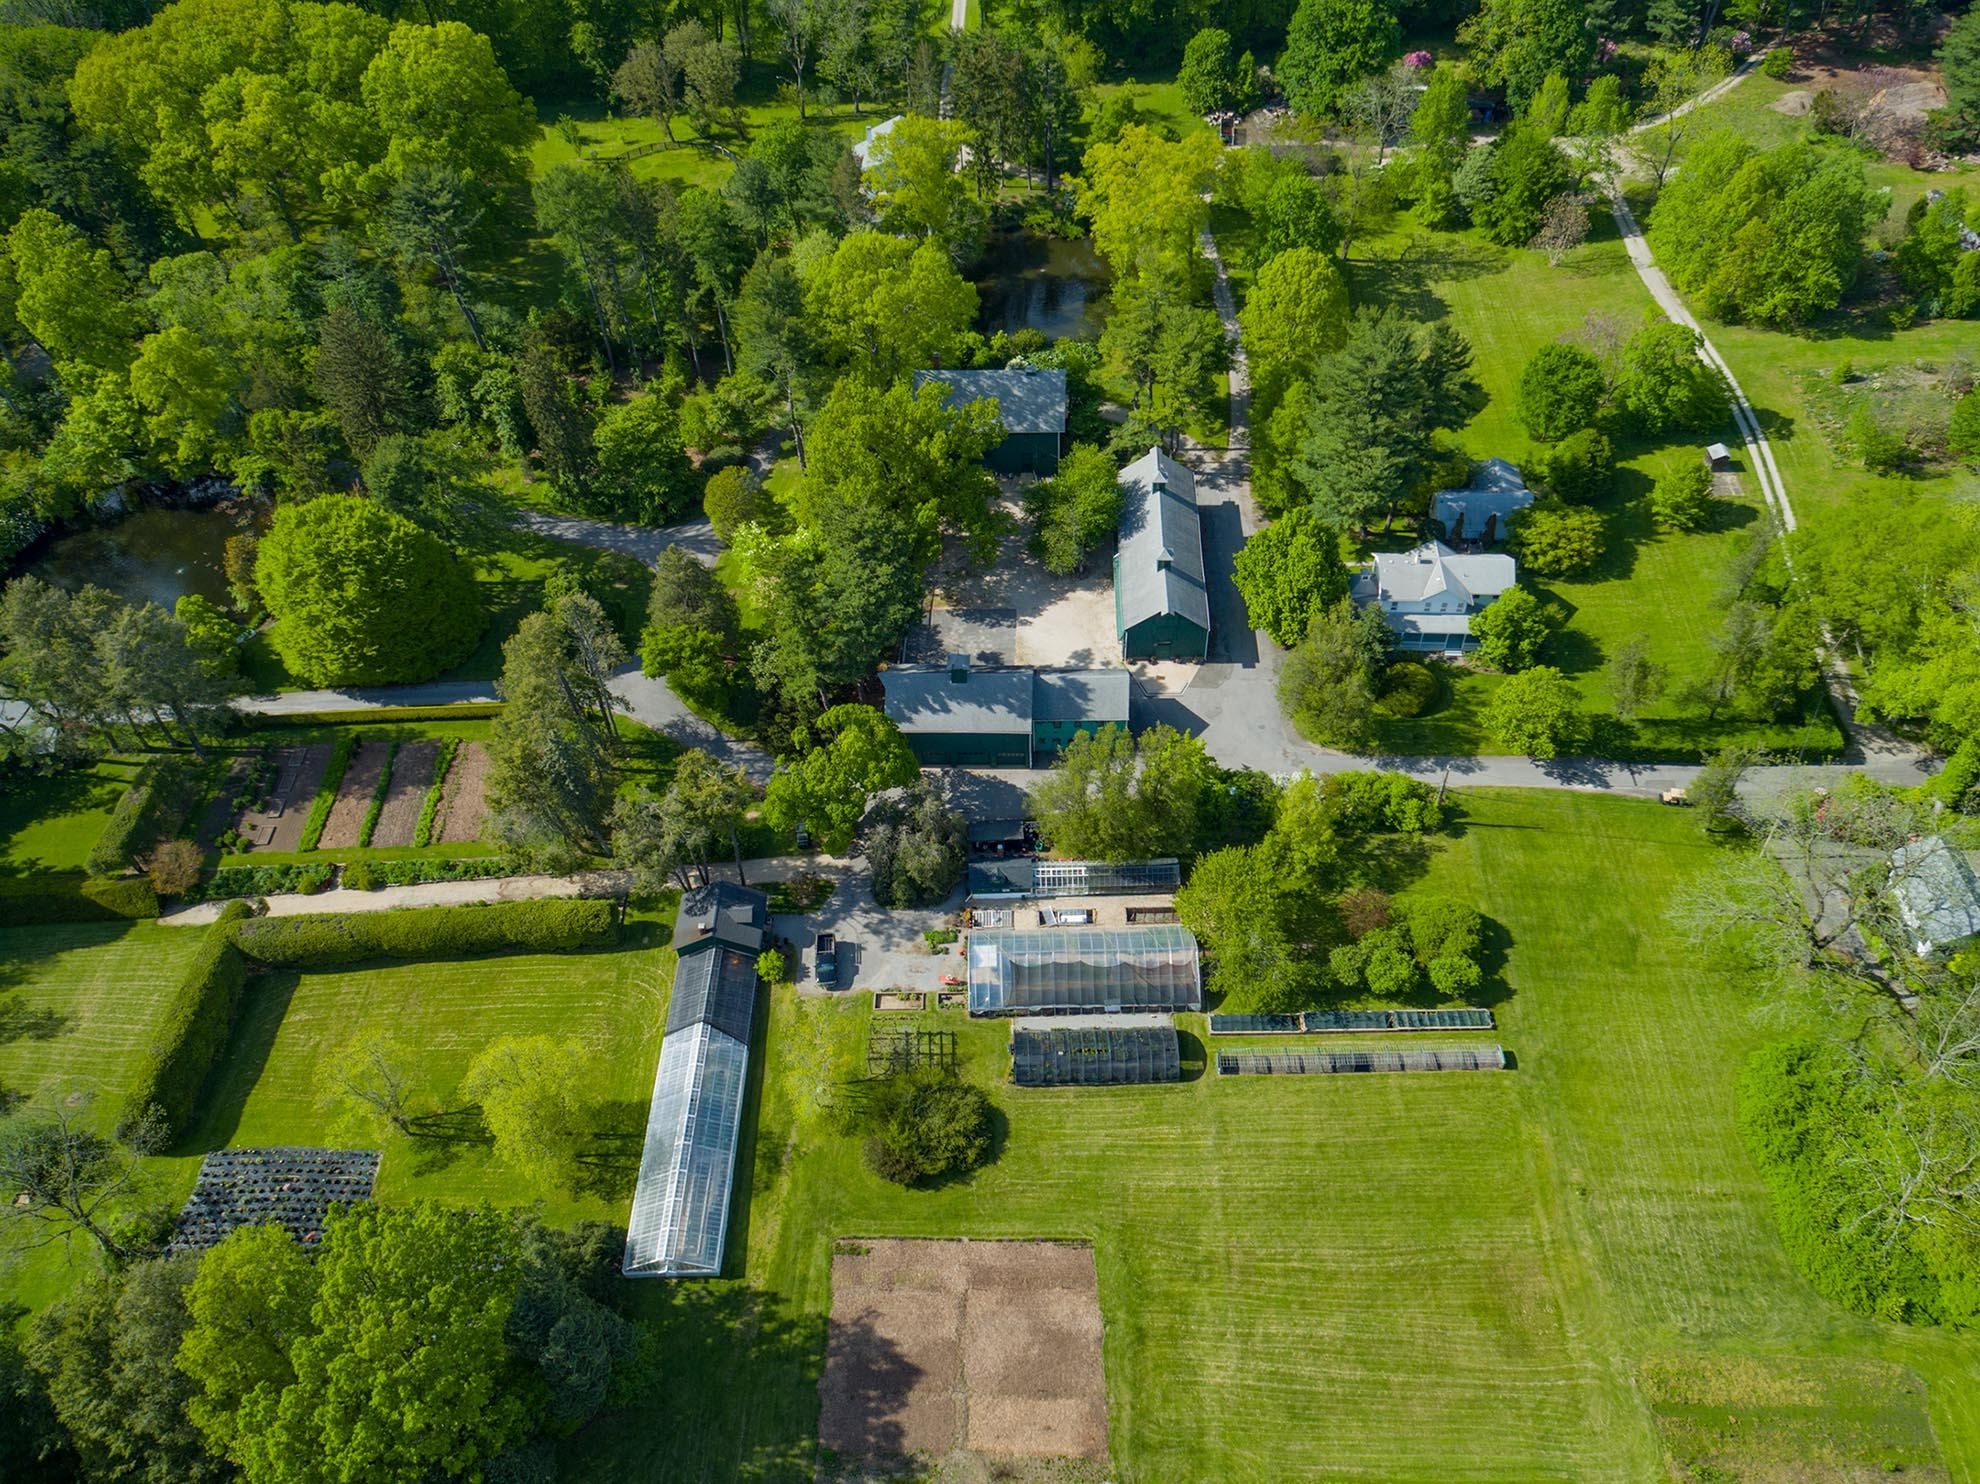 Drone photograph of Farm in Old Westbury NY